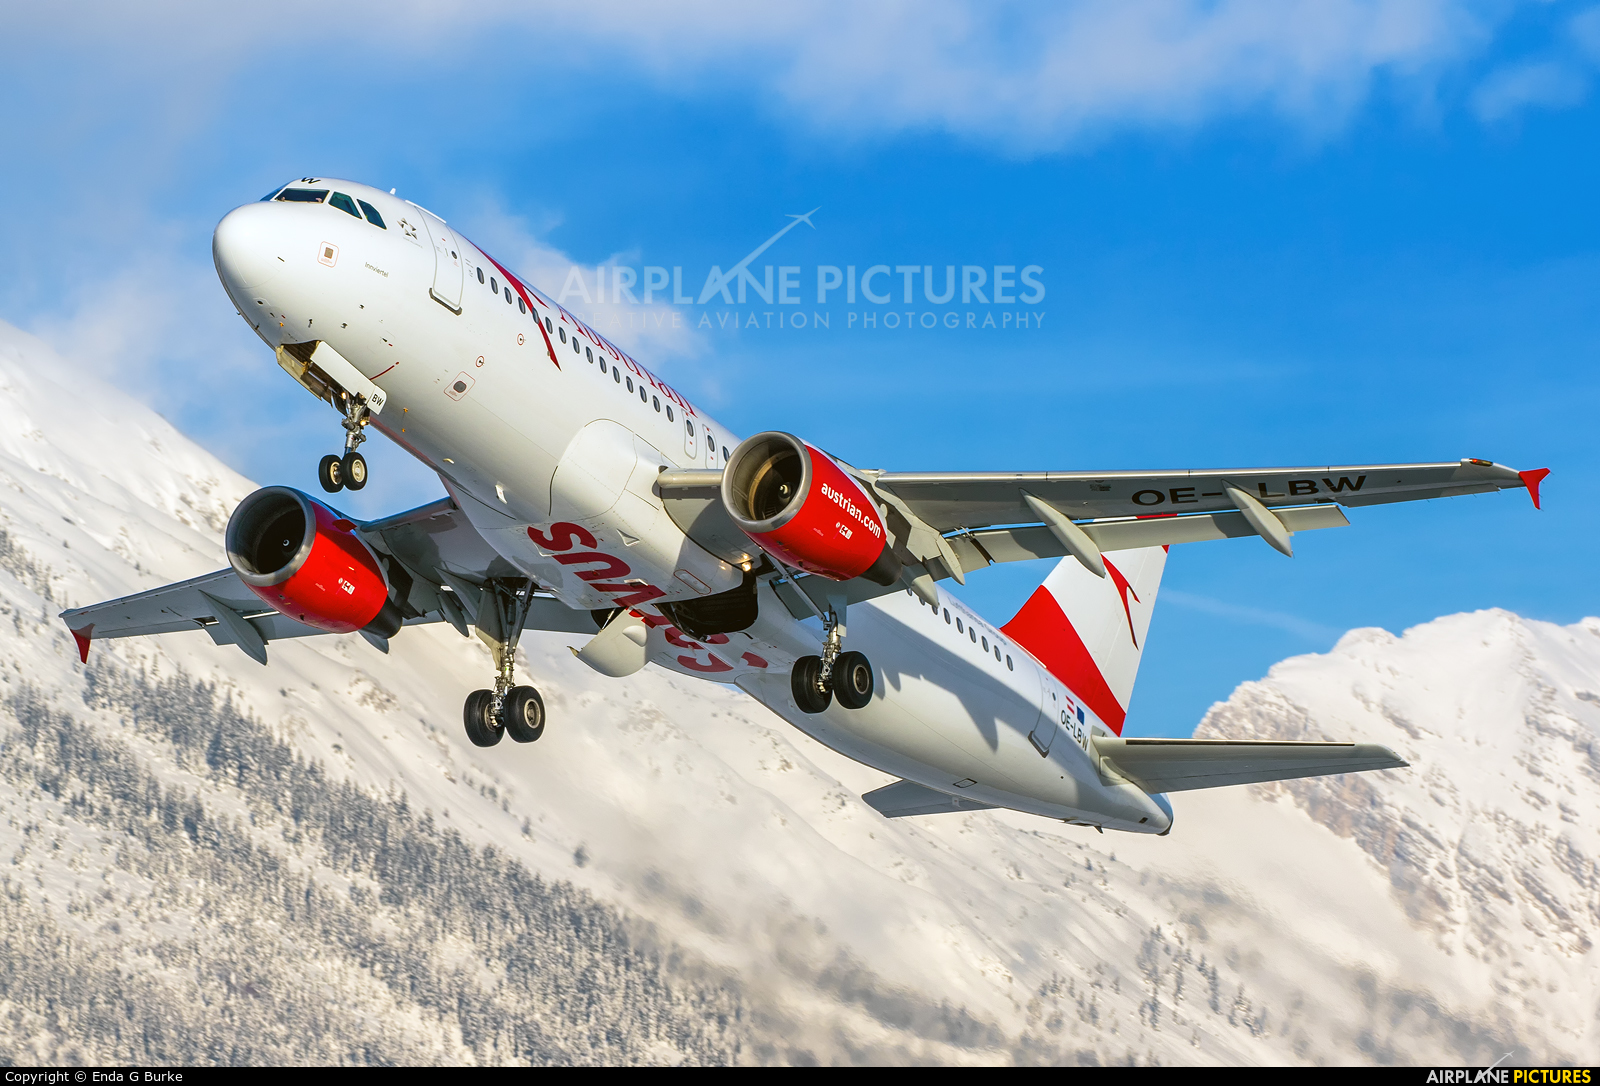 Austrian Airlines/Arrows/Tyrolean OE-LBW aircraft at Innsbruck